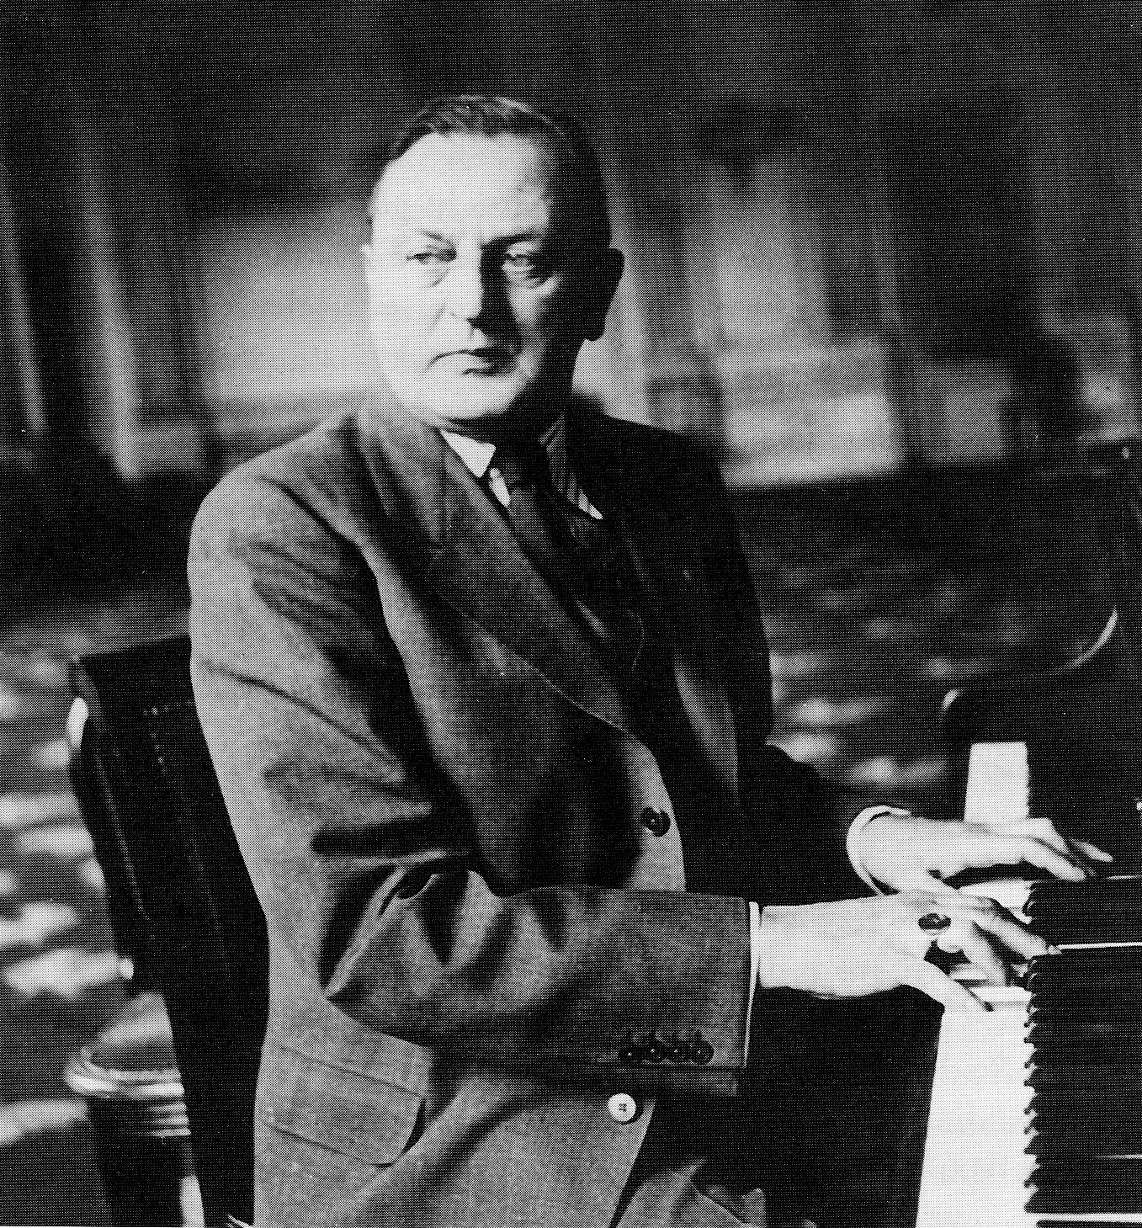 Composer Ralph Benatzky in the 1930s. (Photo: Operetta Research Center)